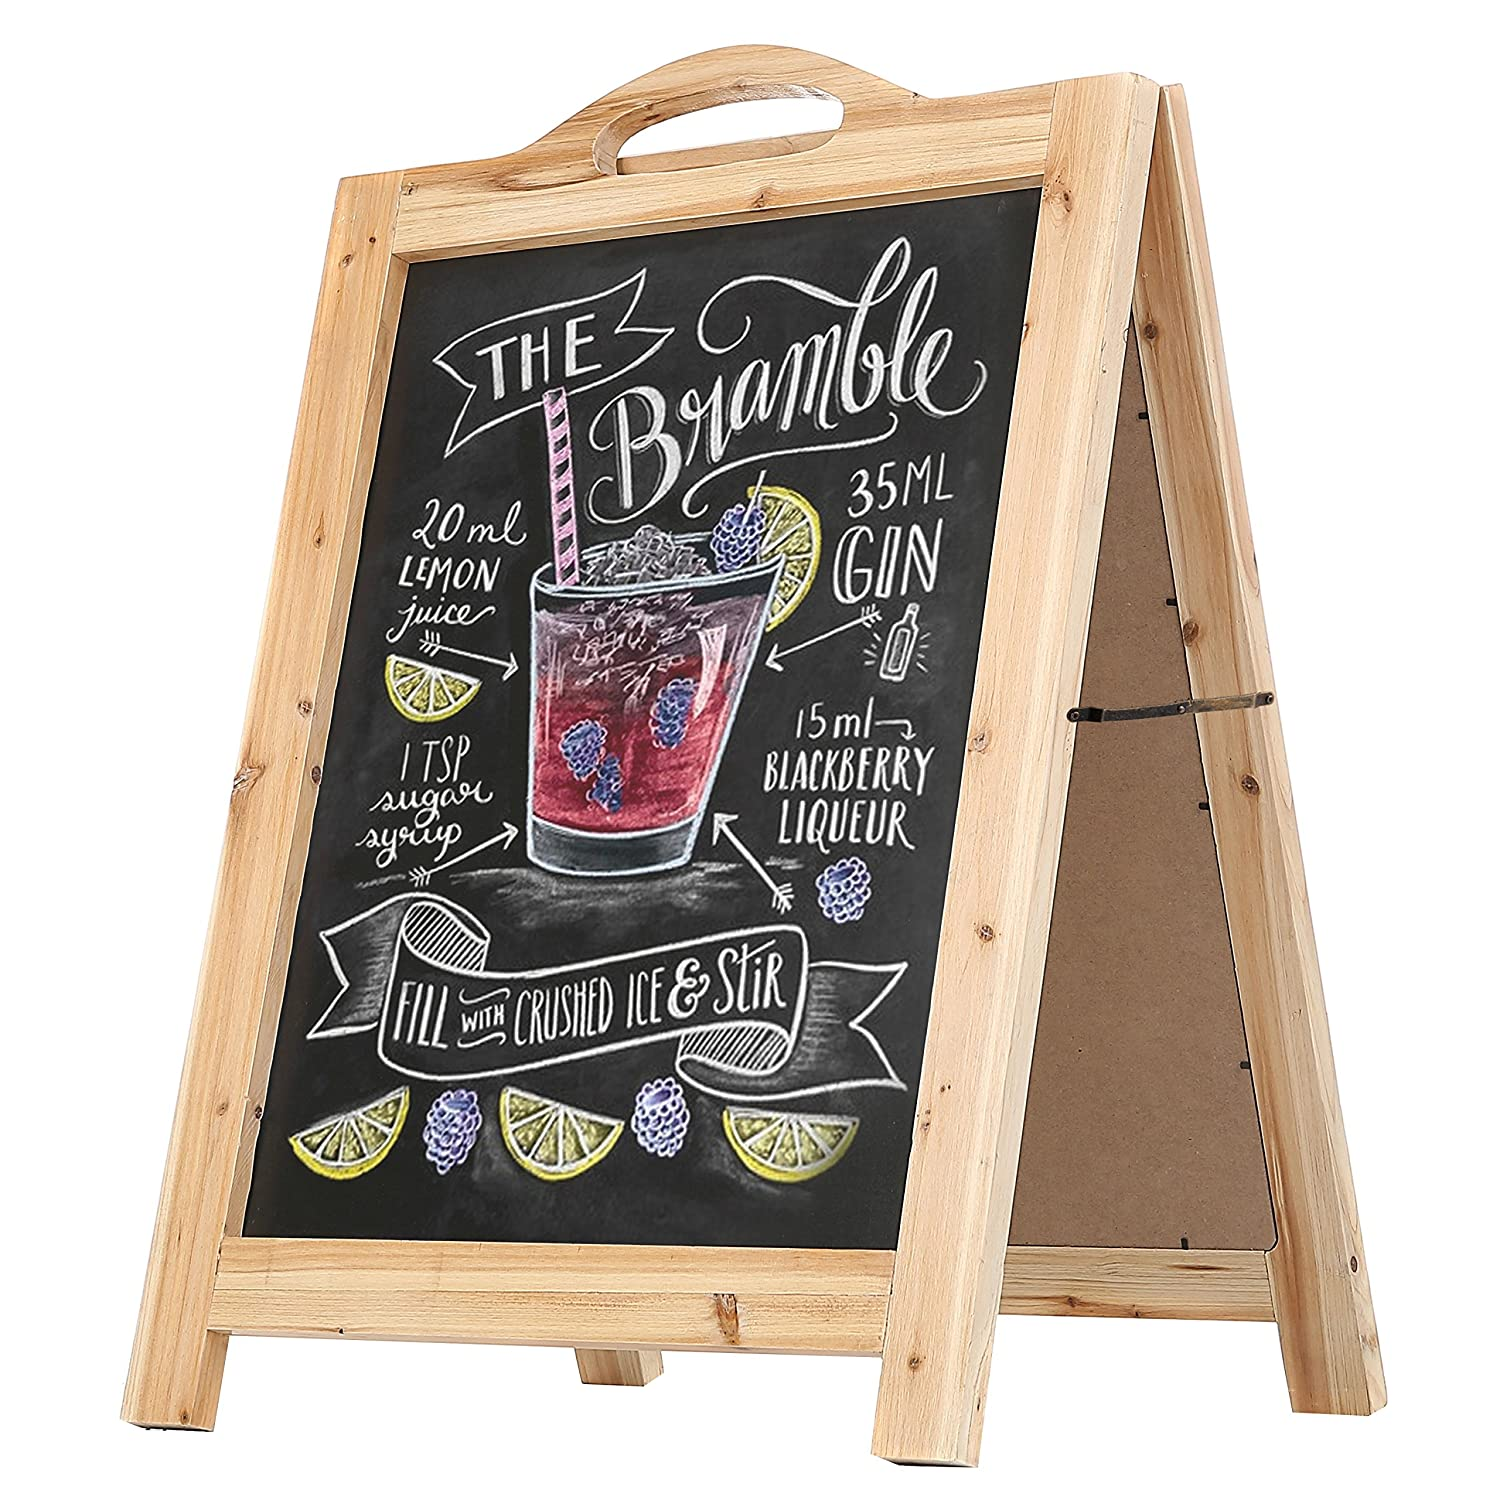 2-Sided Light Brown Wood A-Frame Chalkboard Sign, Sidewalk Cafe Menu Sandwich Board